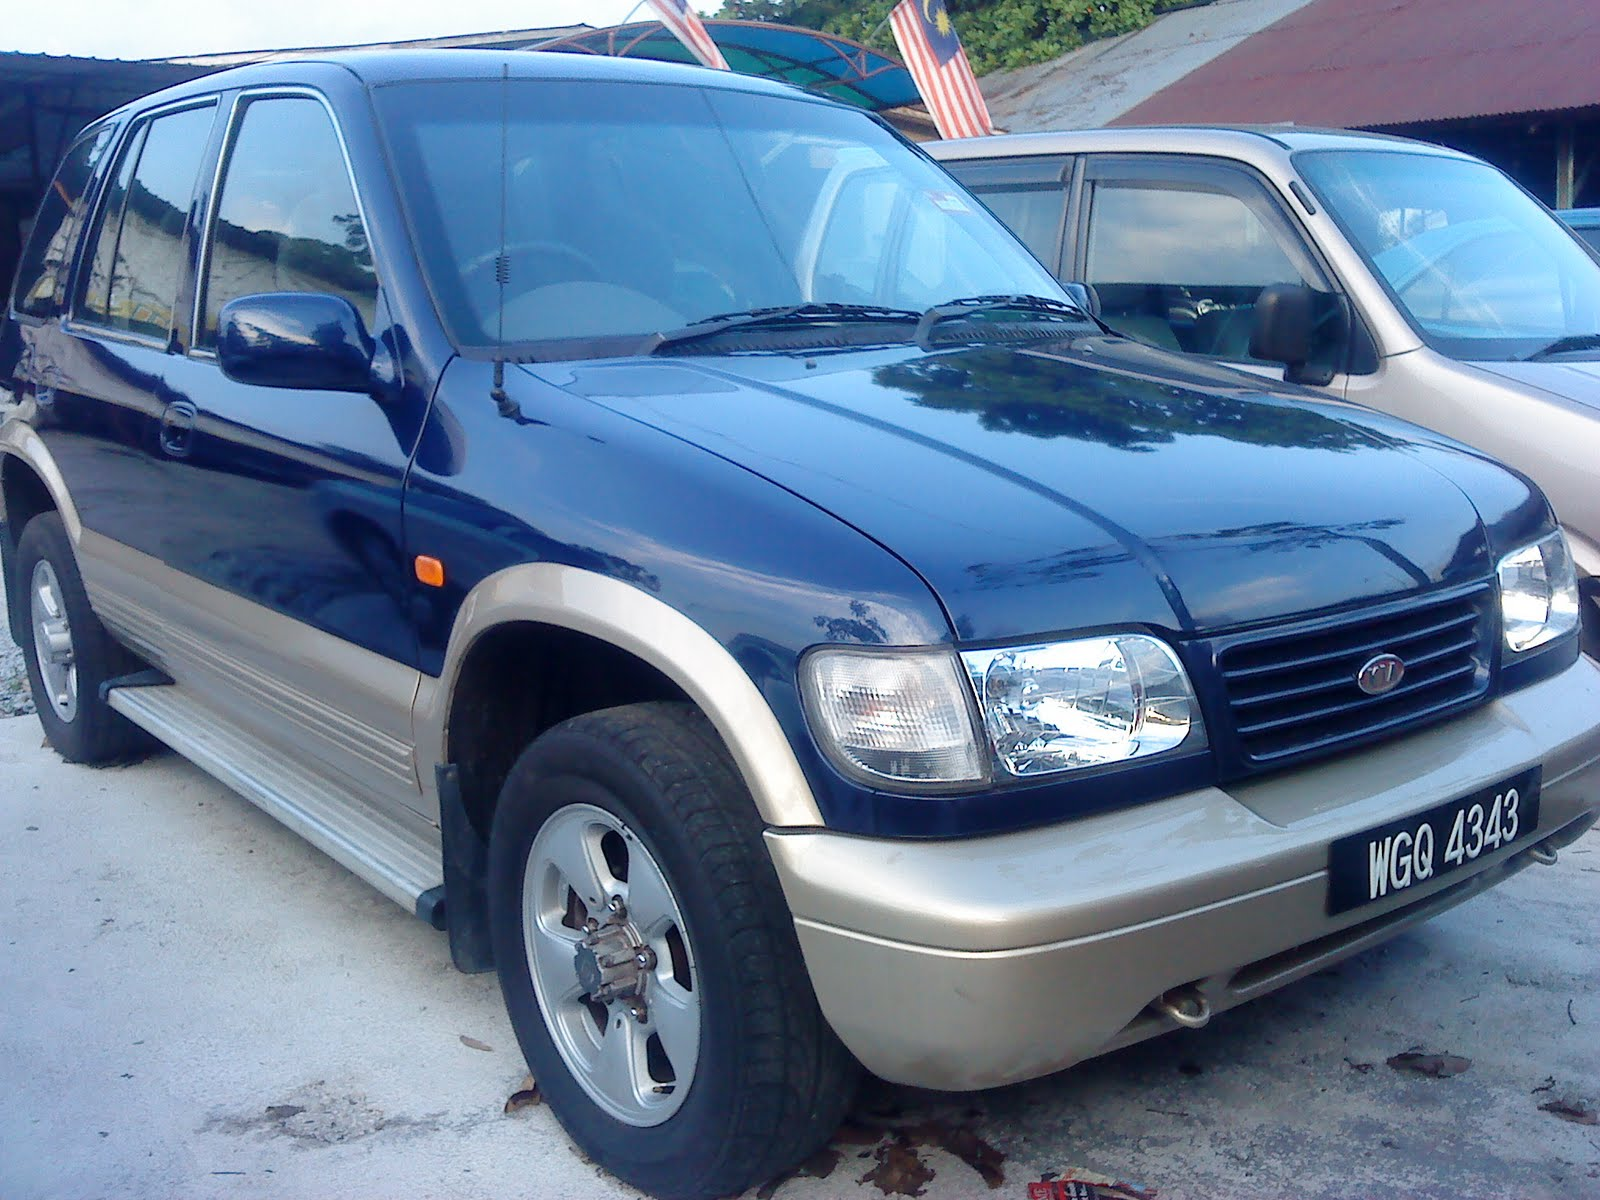 Kia Sportage 2.0 1997 photo - 8